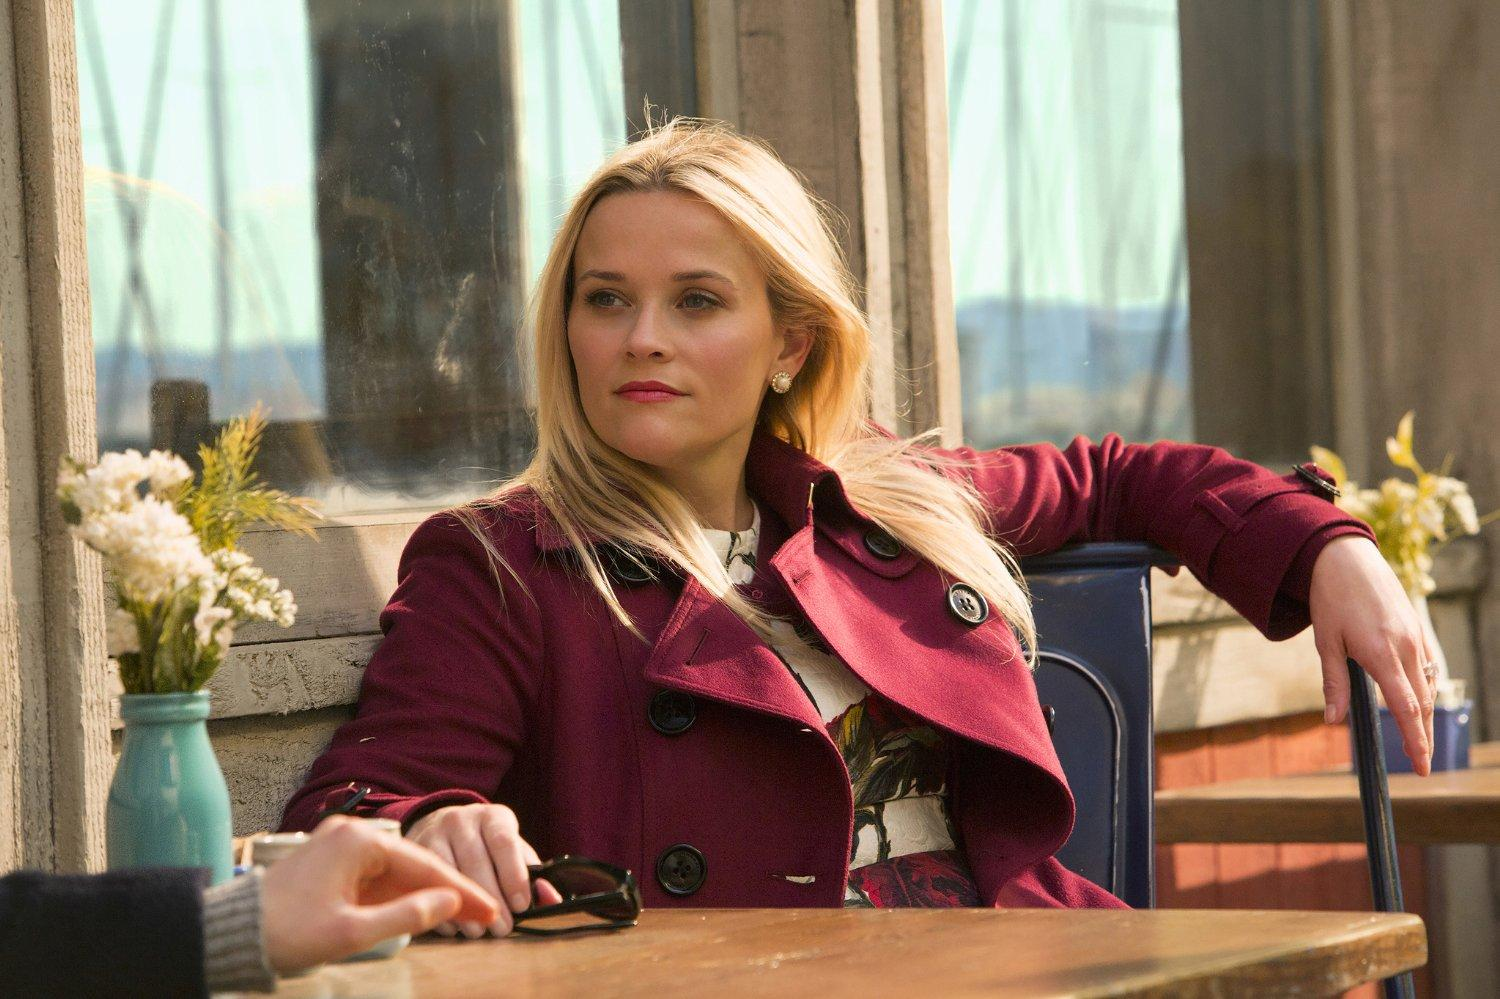 Reese Witherspoon Is Heading to The Mindy Project